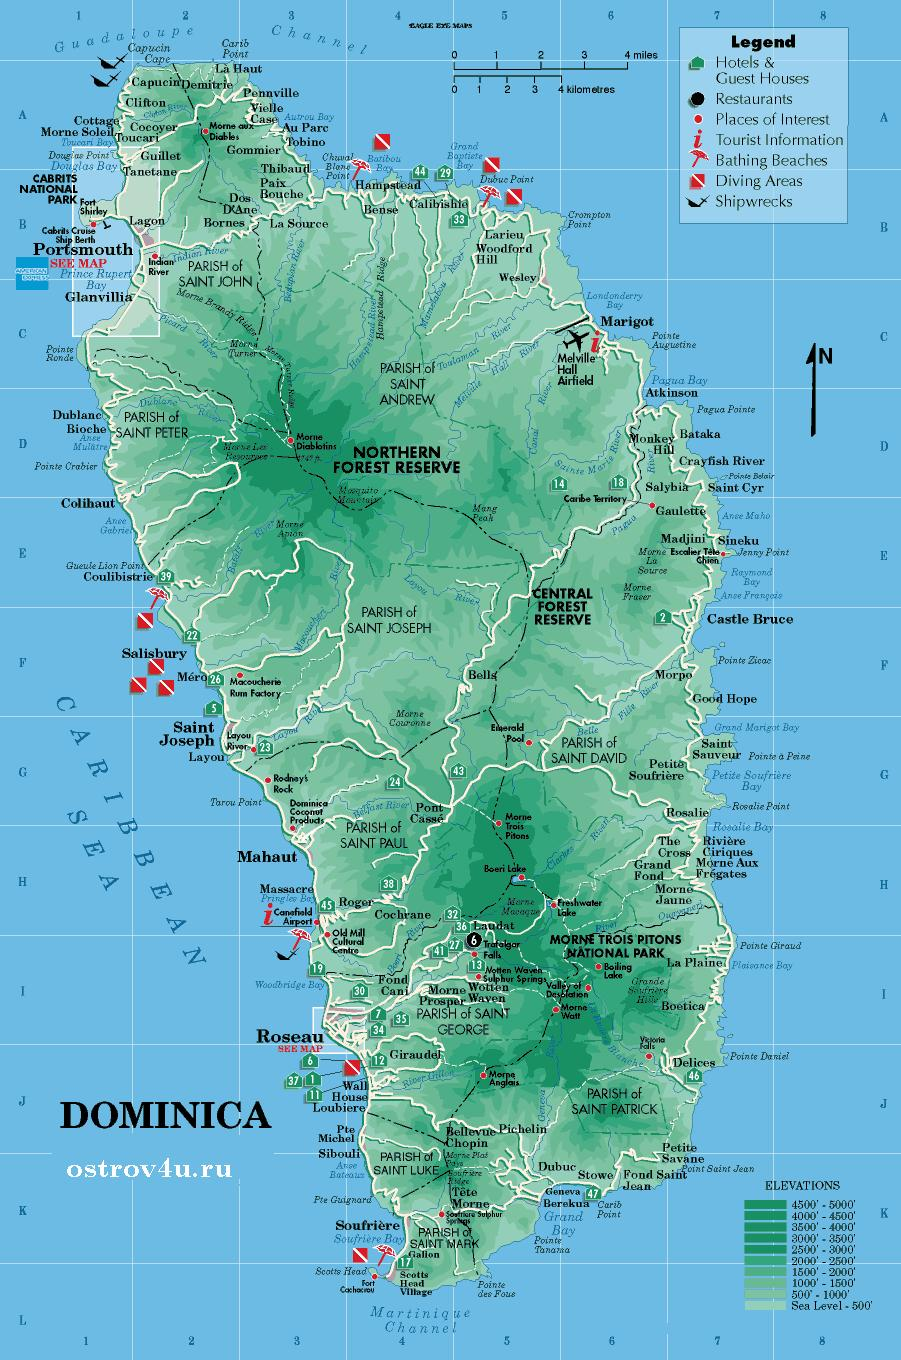 Карта Доминика,map of Dominica